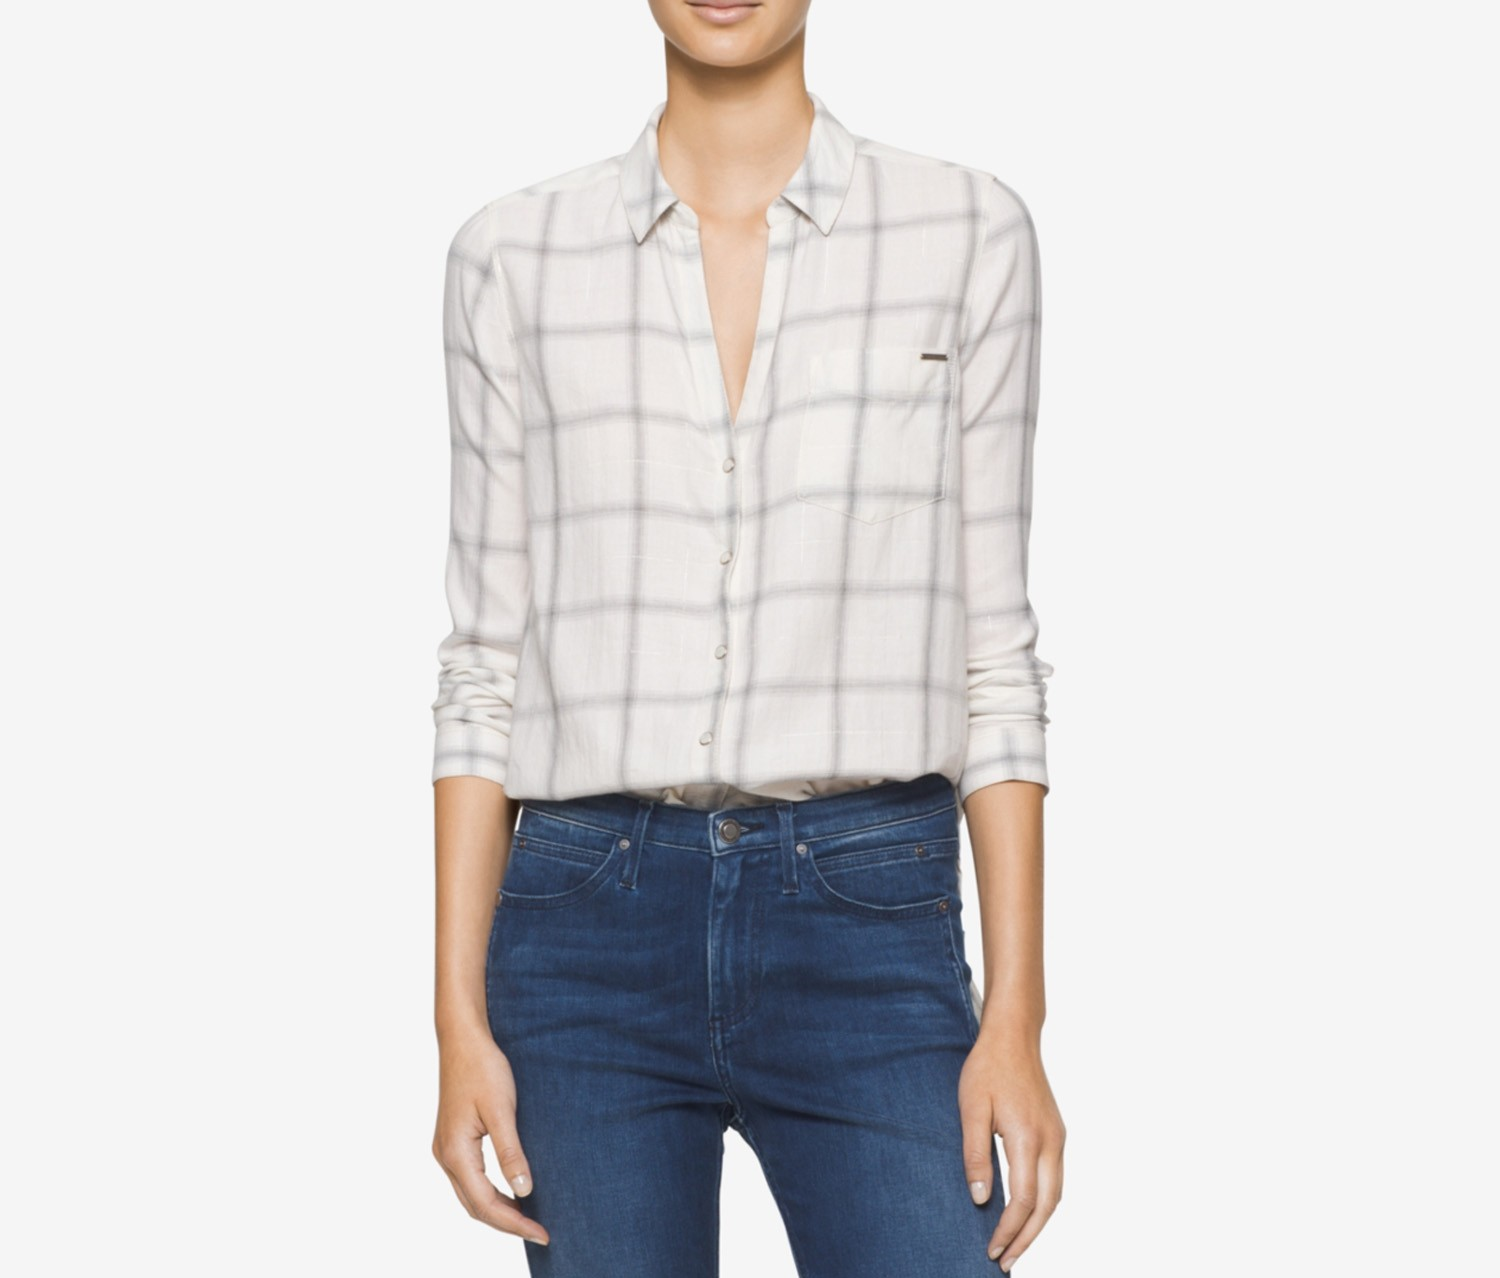 Jeans Plaid Long Sleeve Top, Northern Ivory